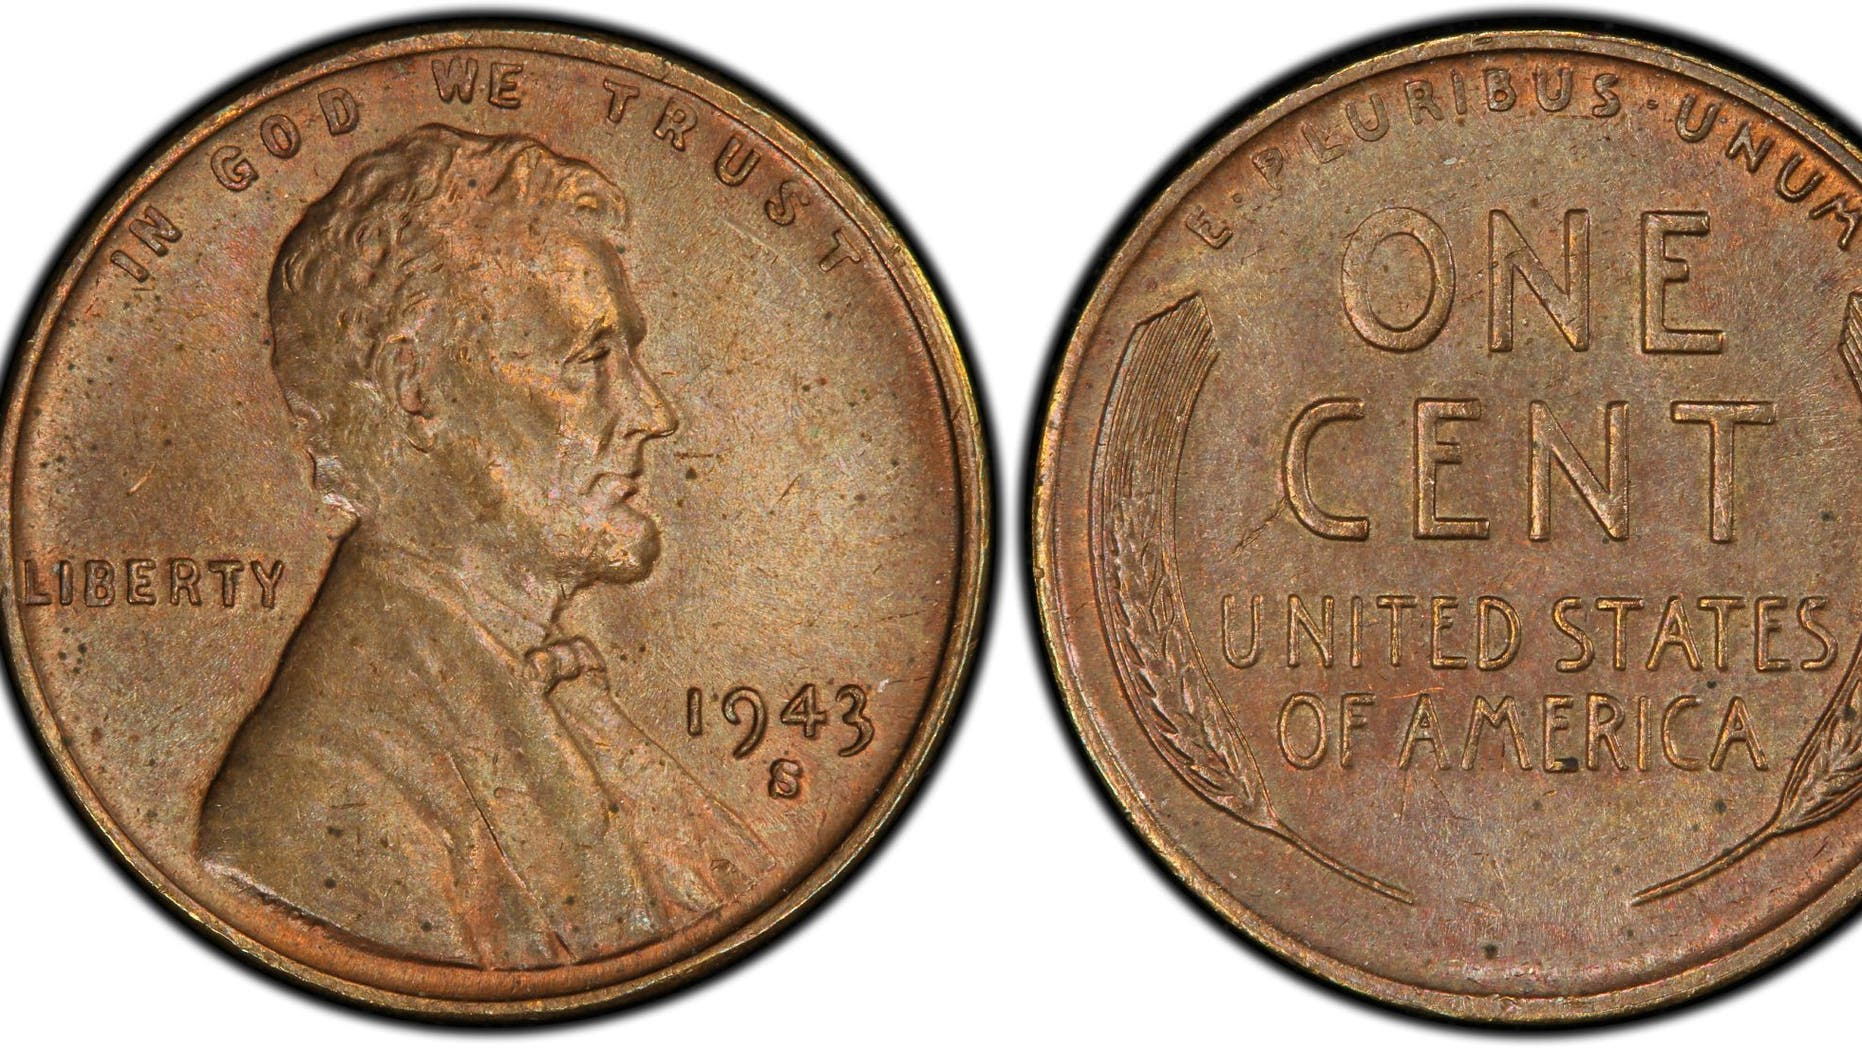 Pennies in 1943 were supposed to be made of zinc-coated steel and those grey-colored cents are quite common. A few coins, however, were erroneously made of bronze, the metal composition from the previous year. (PCGS.com)